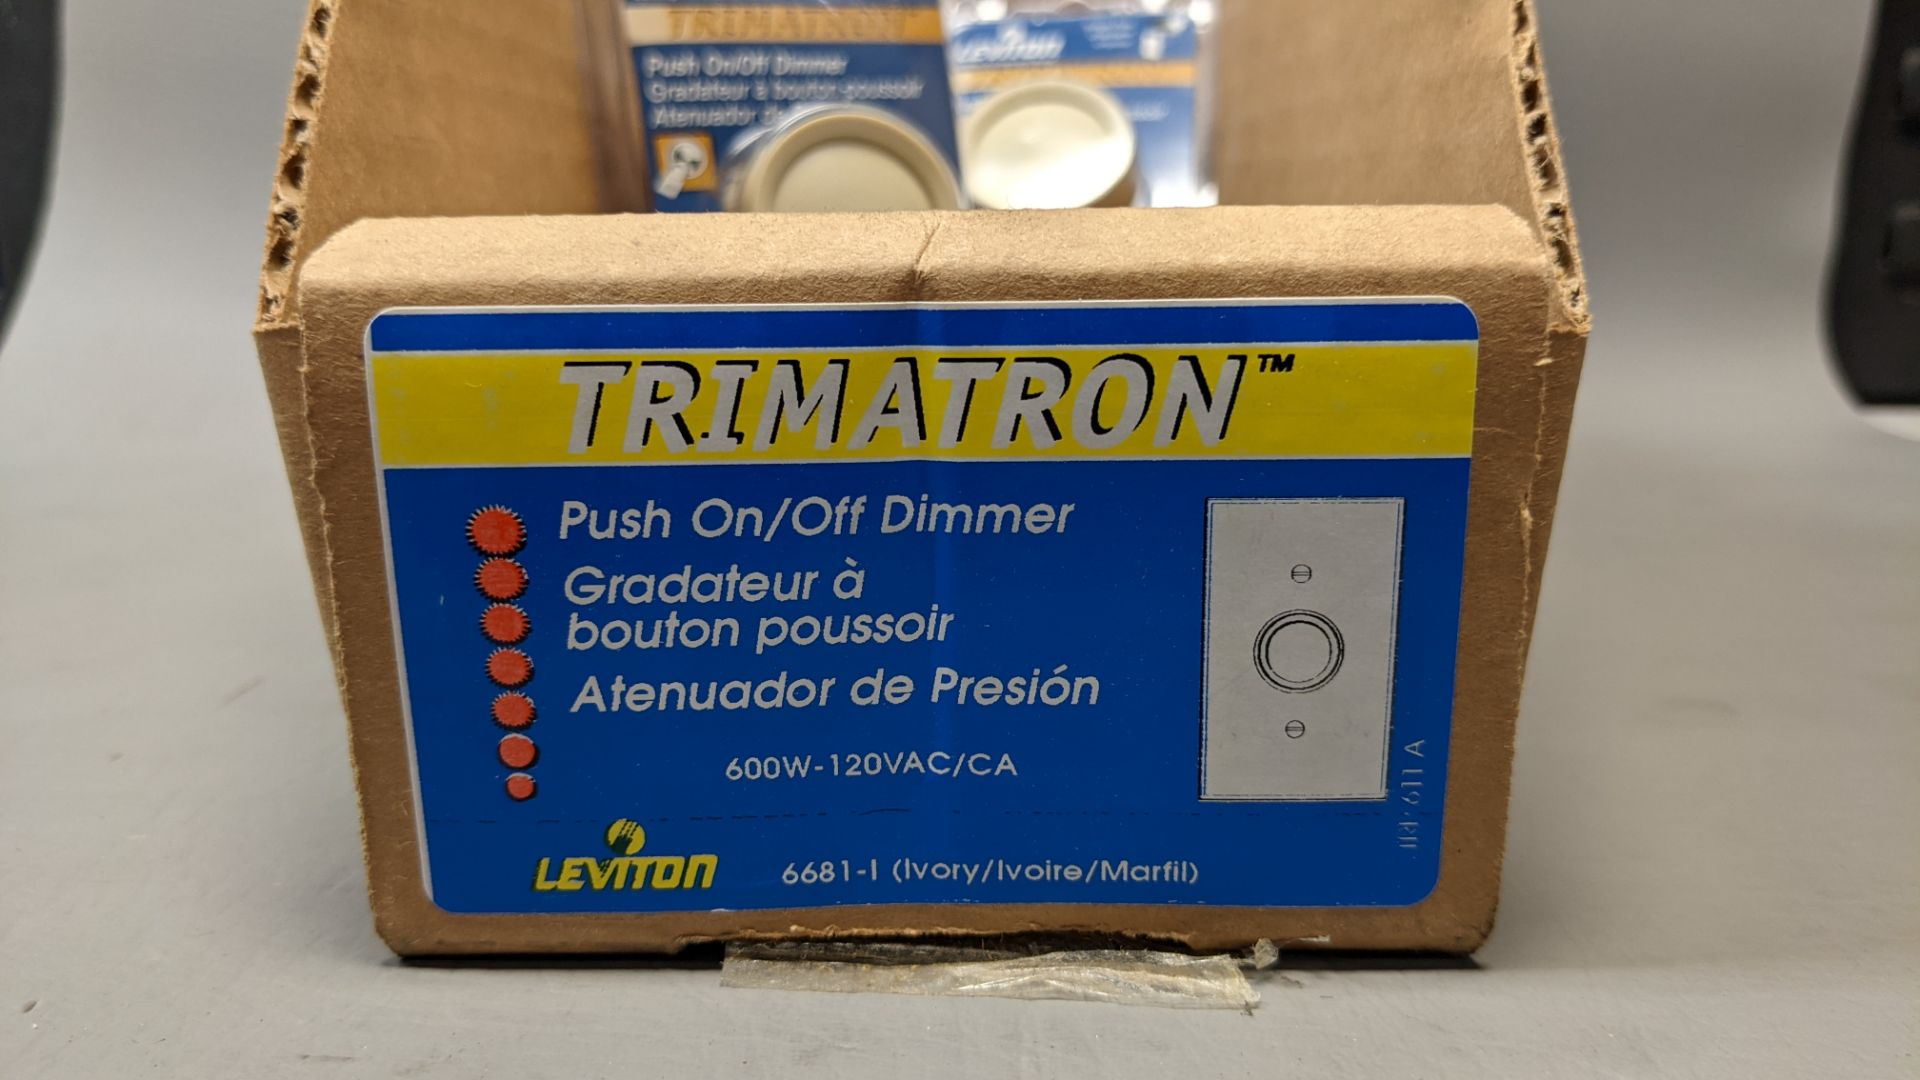 LOT OF NEW LEVITON PUSH ON/OFF LIGHT DIMMERS - Image 2 of 5